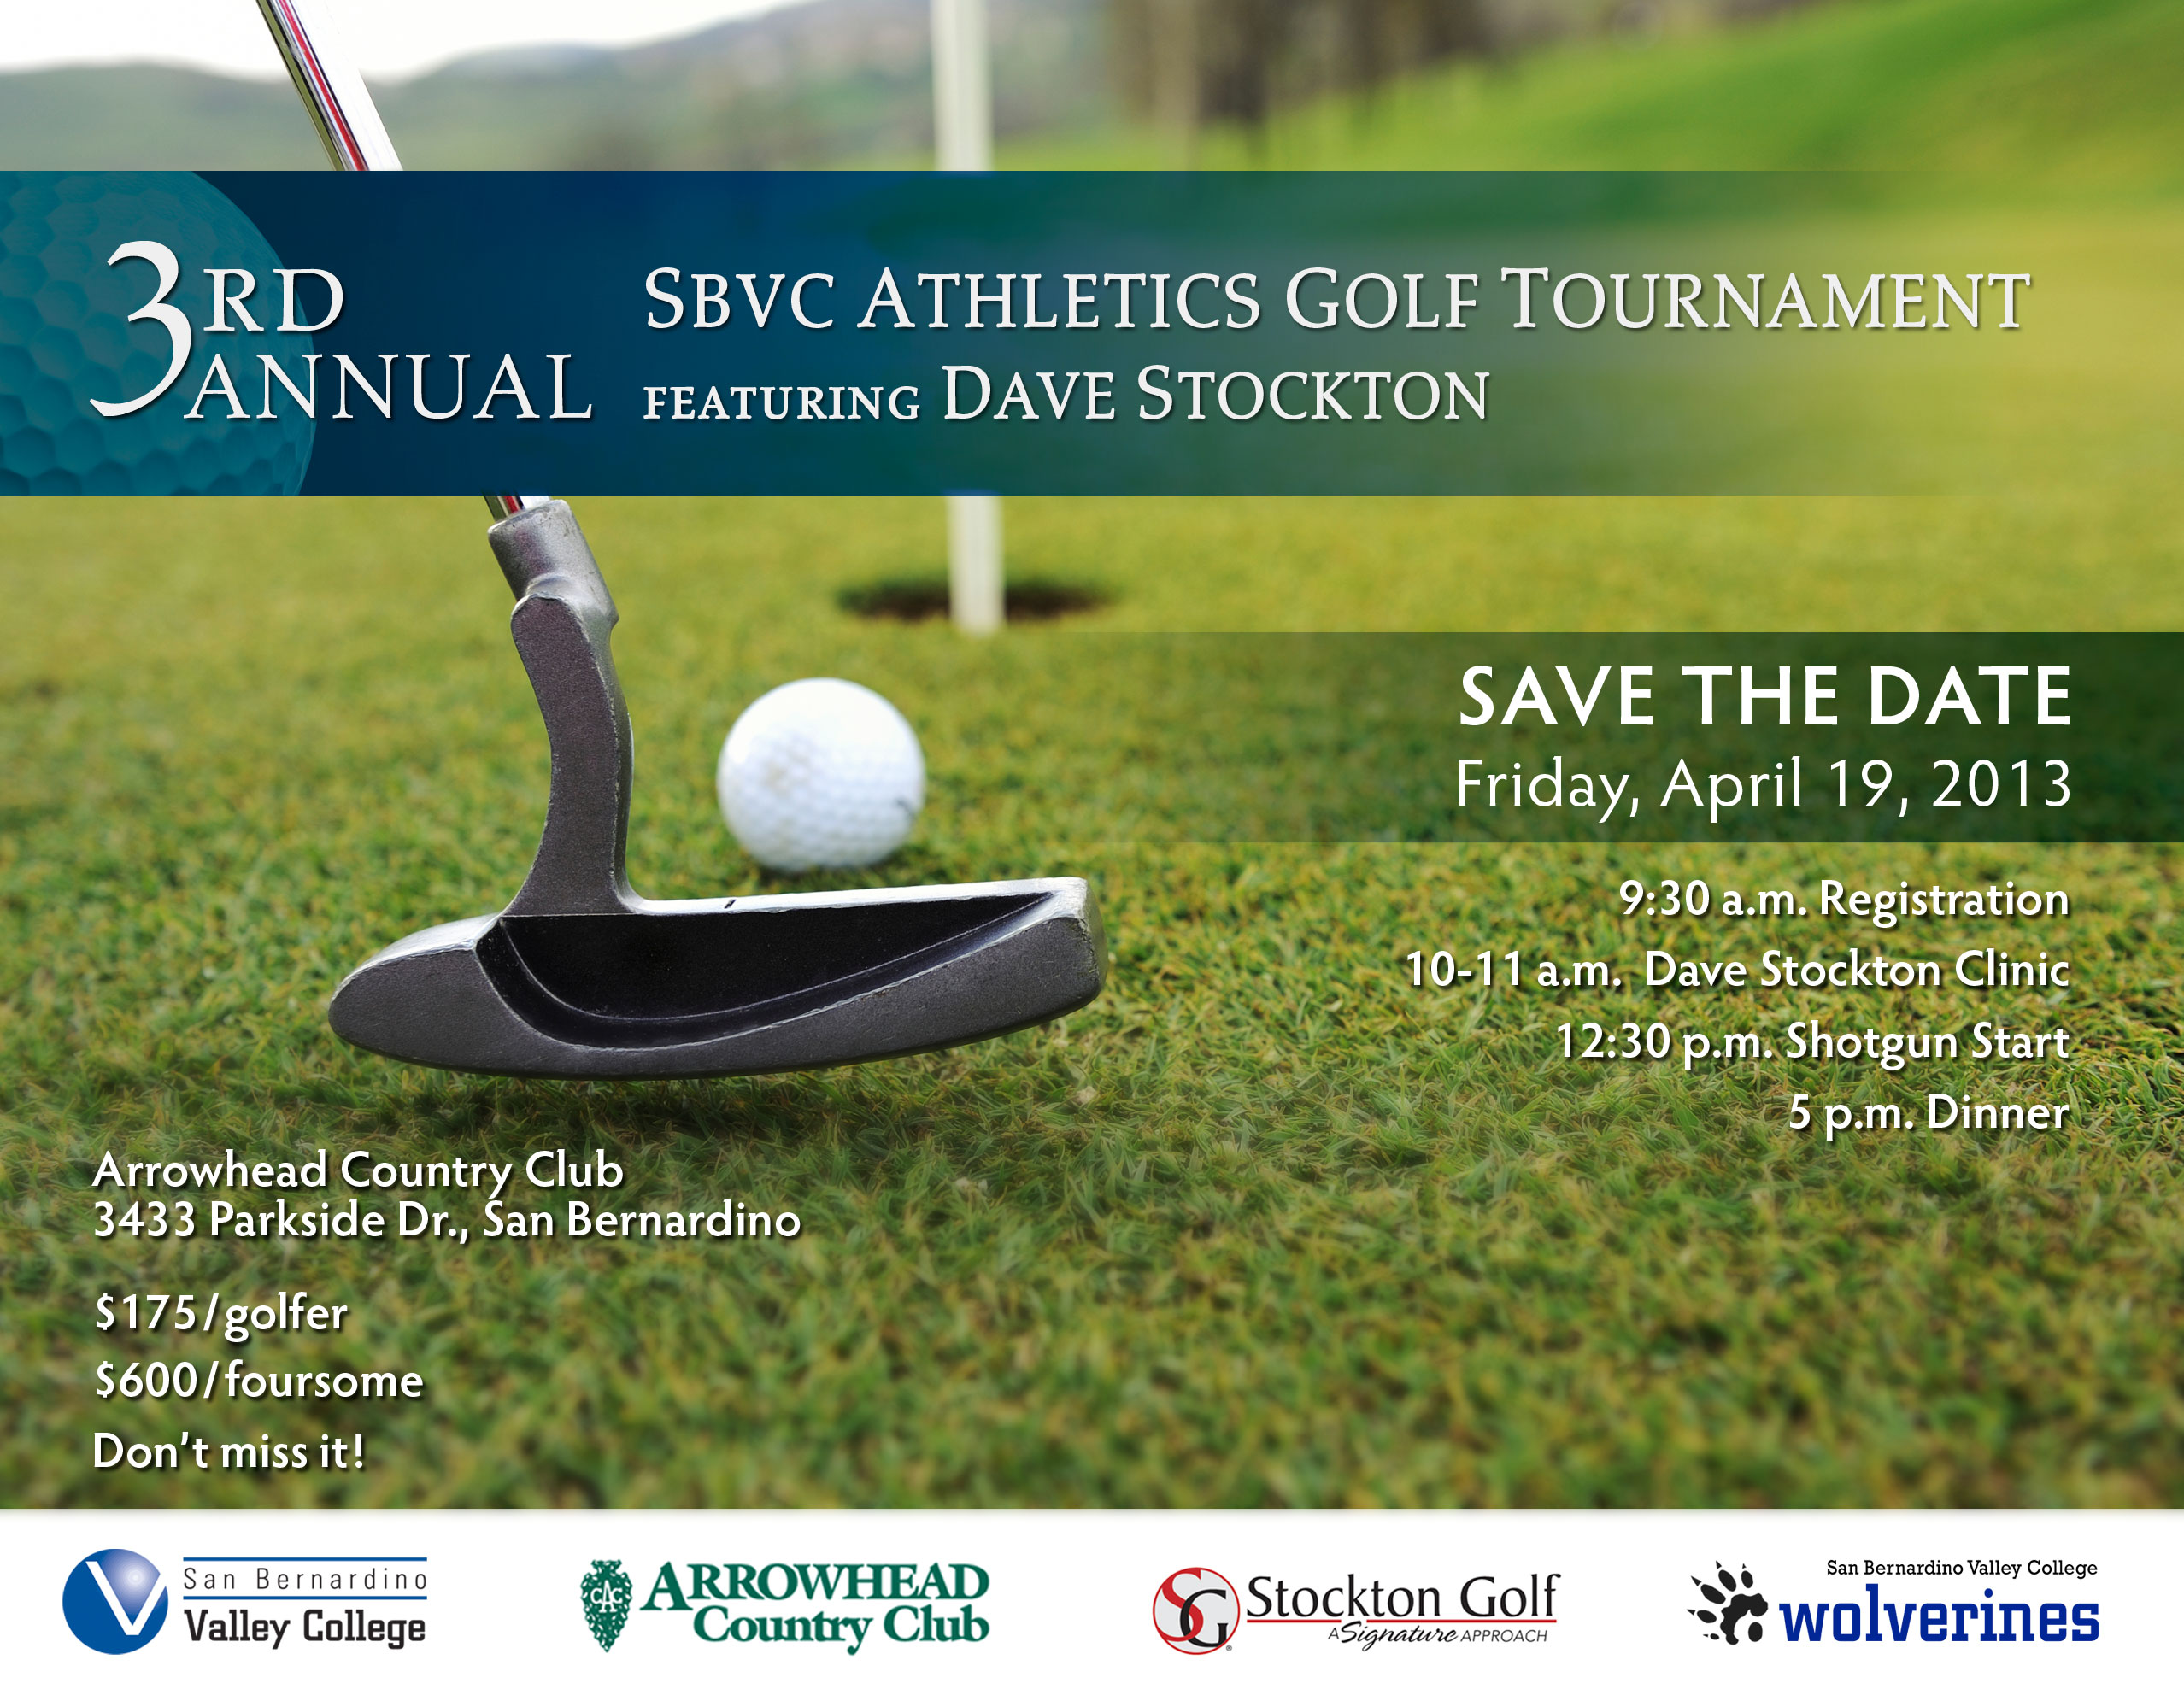 Save the Date! April 19th for the SBVC Golf Tournament